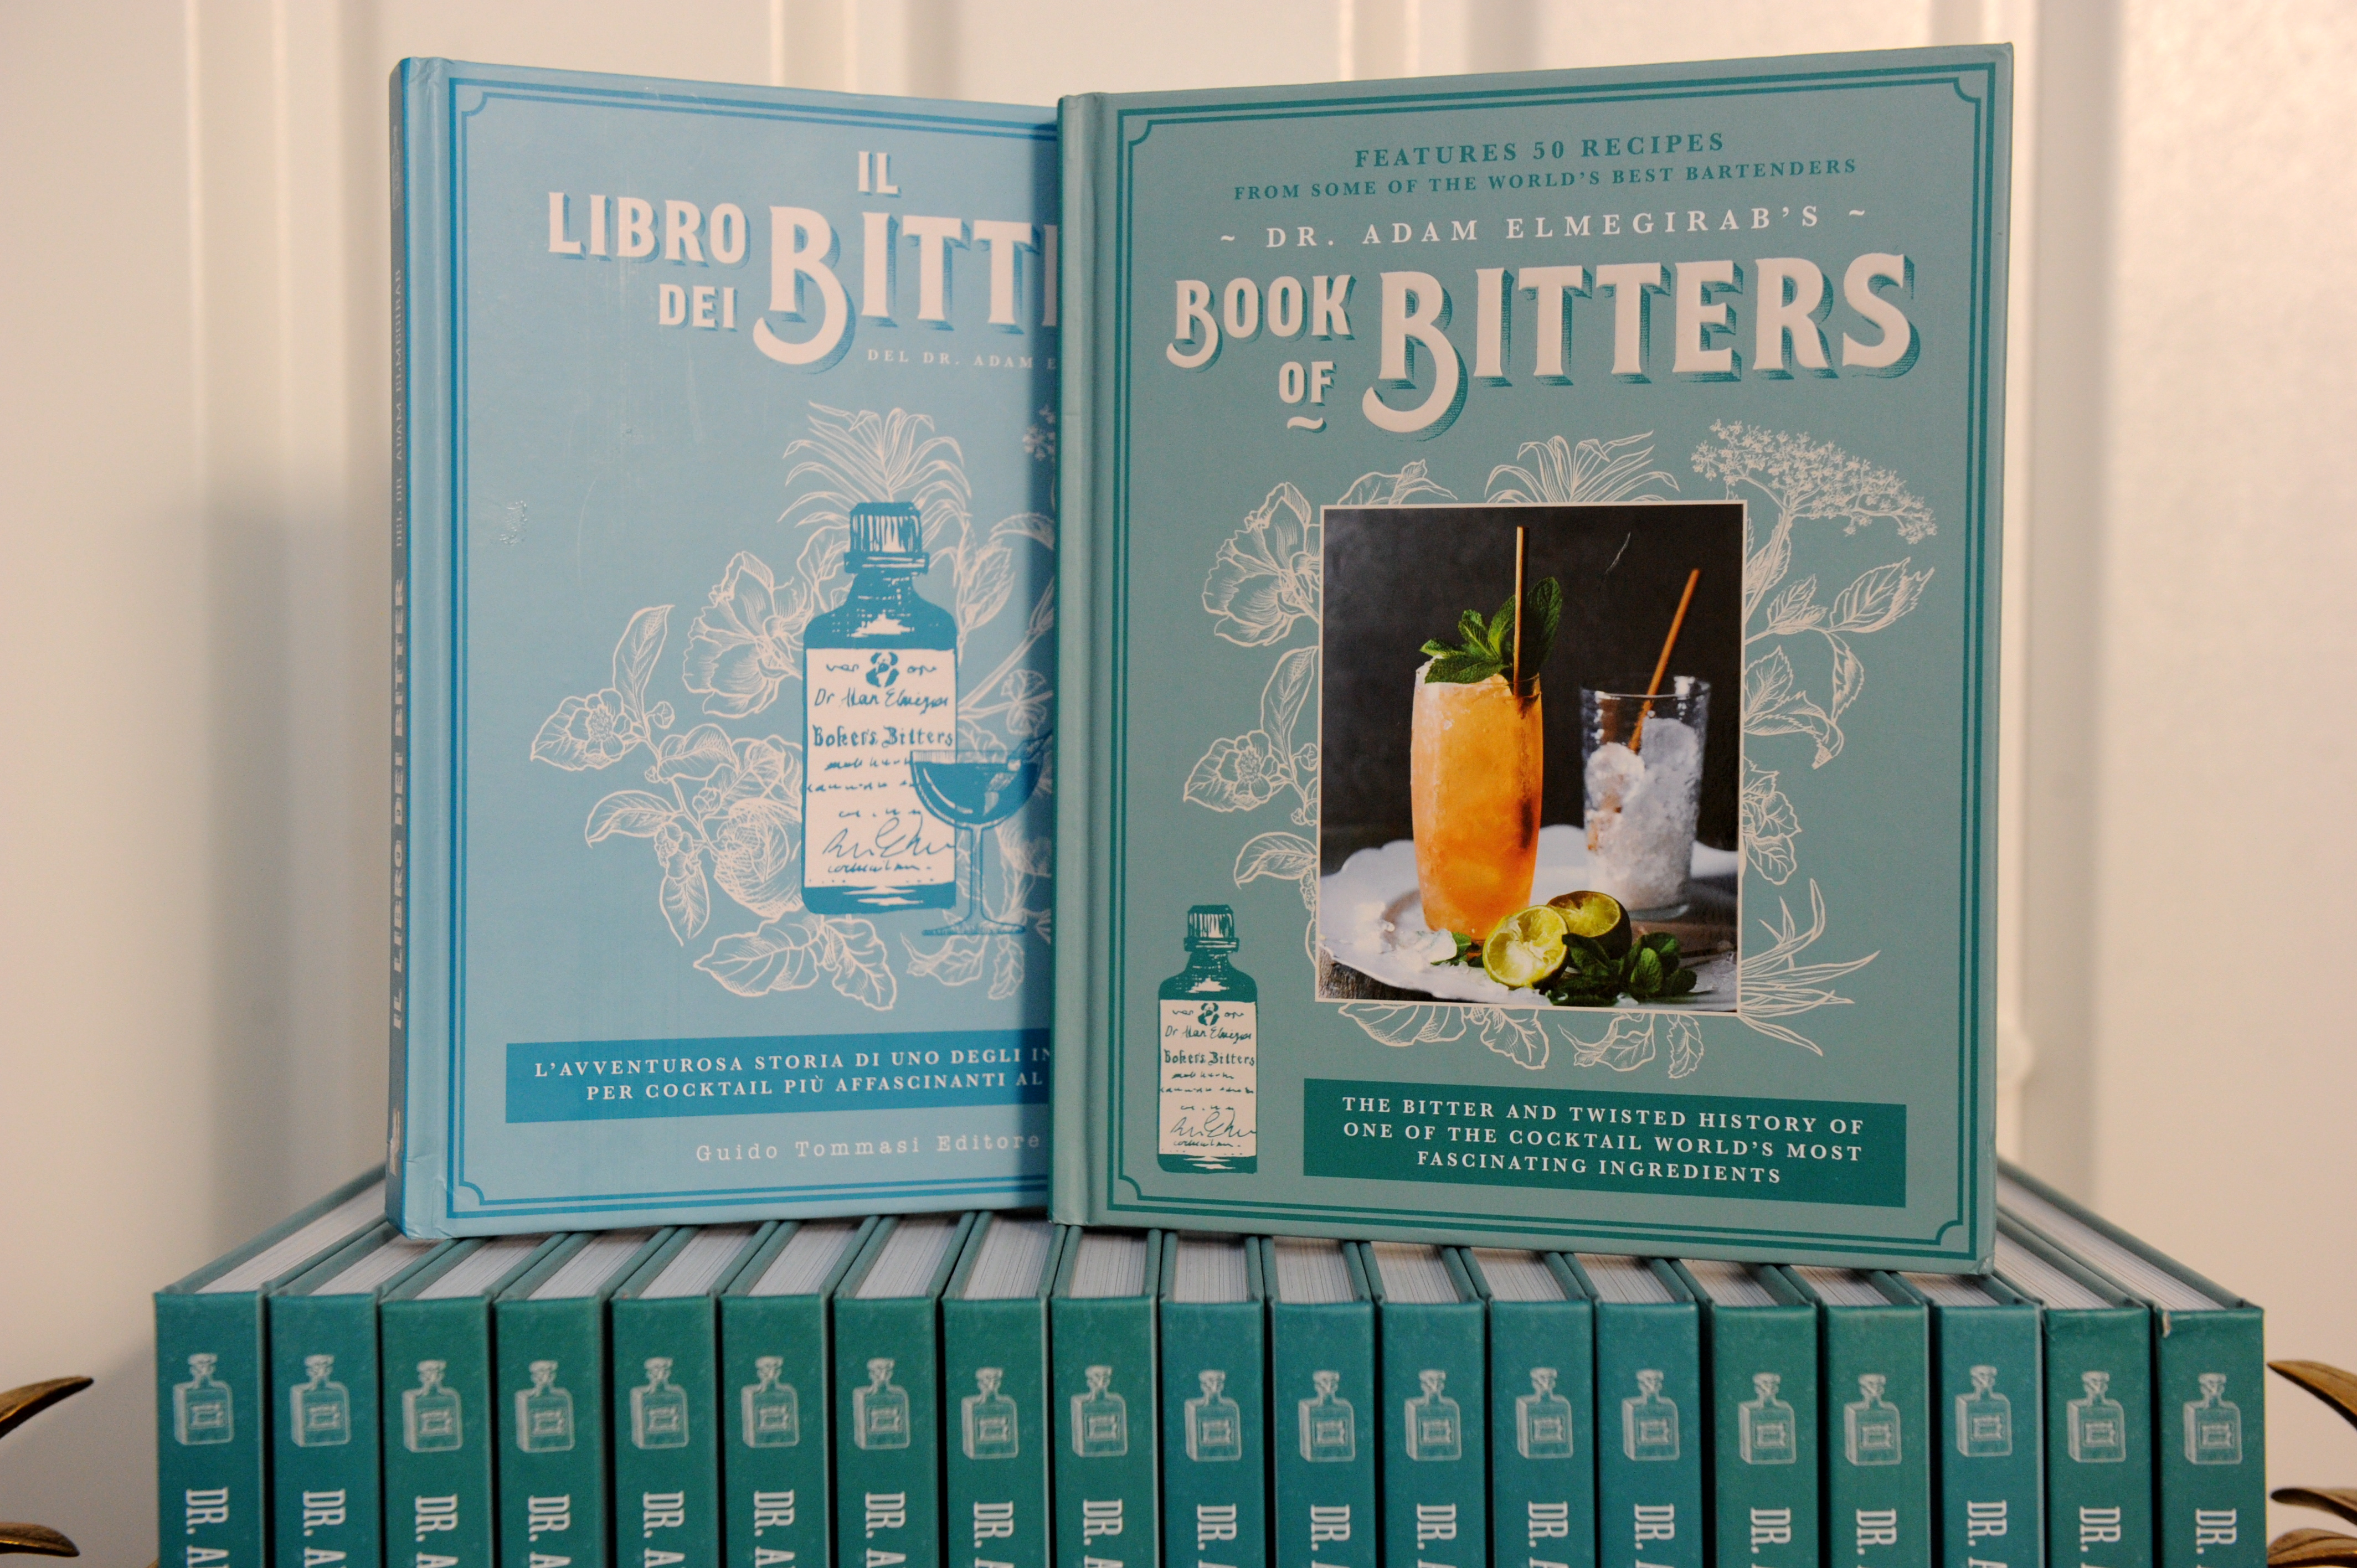 Gin and bevy of bitters behind the sweet success of